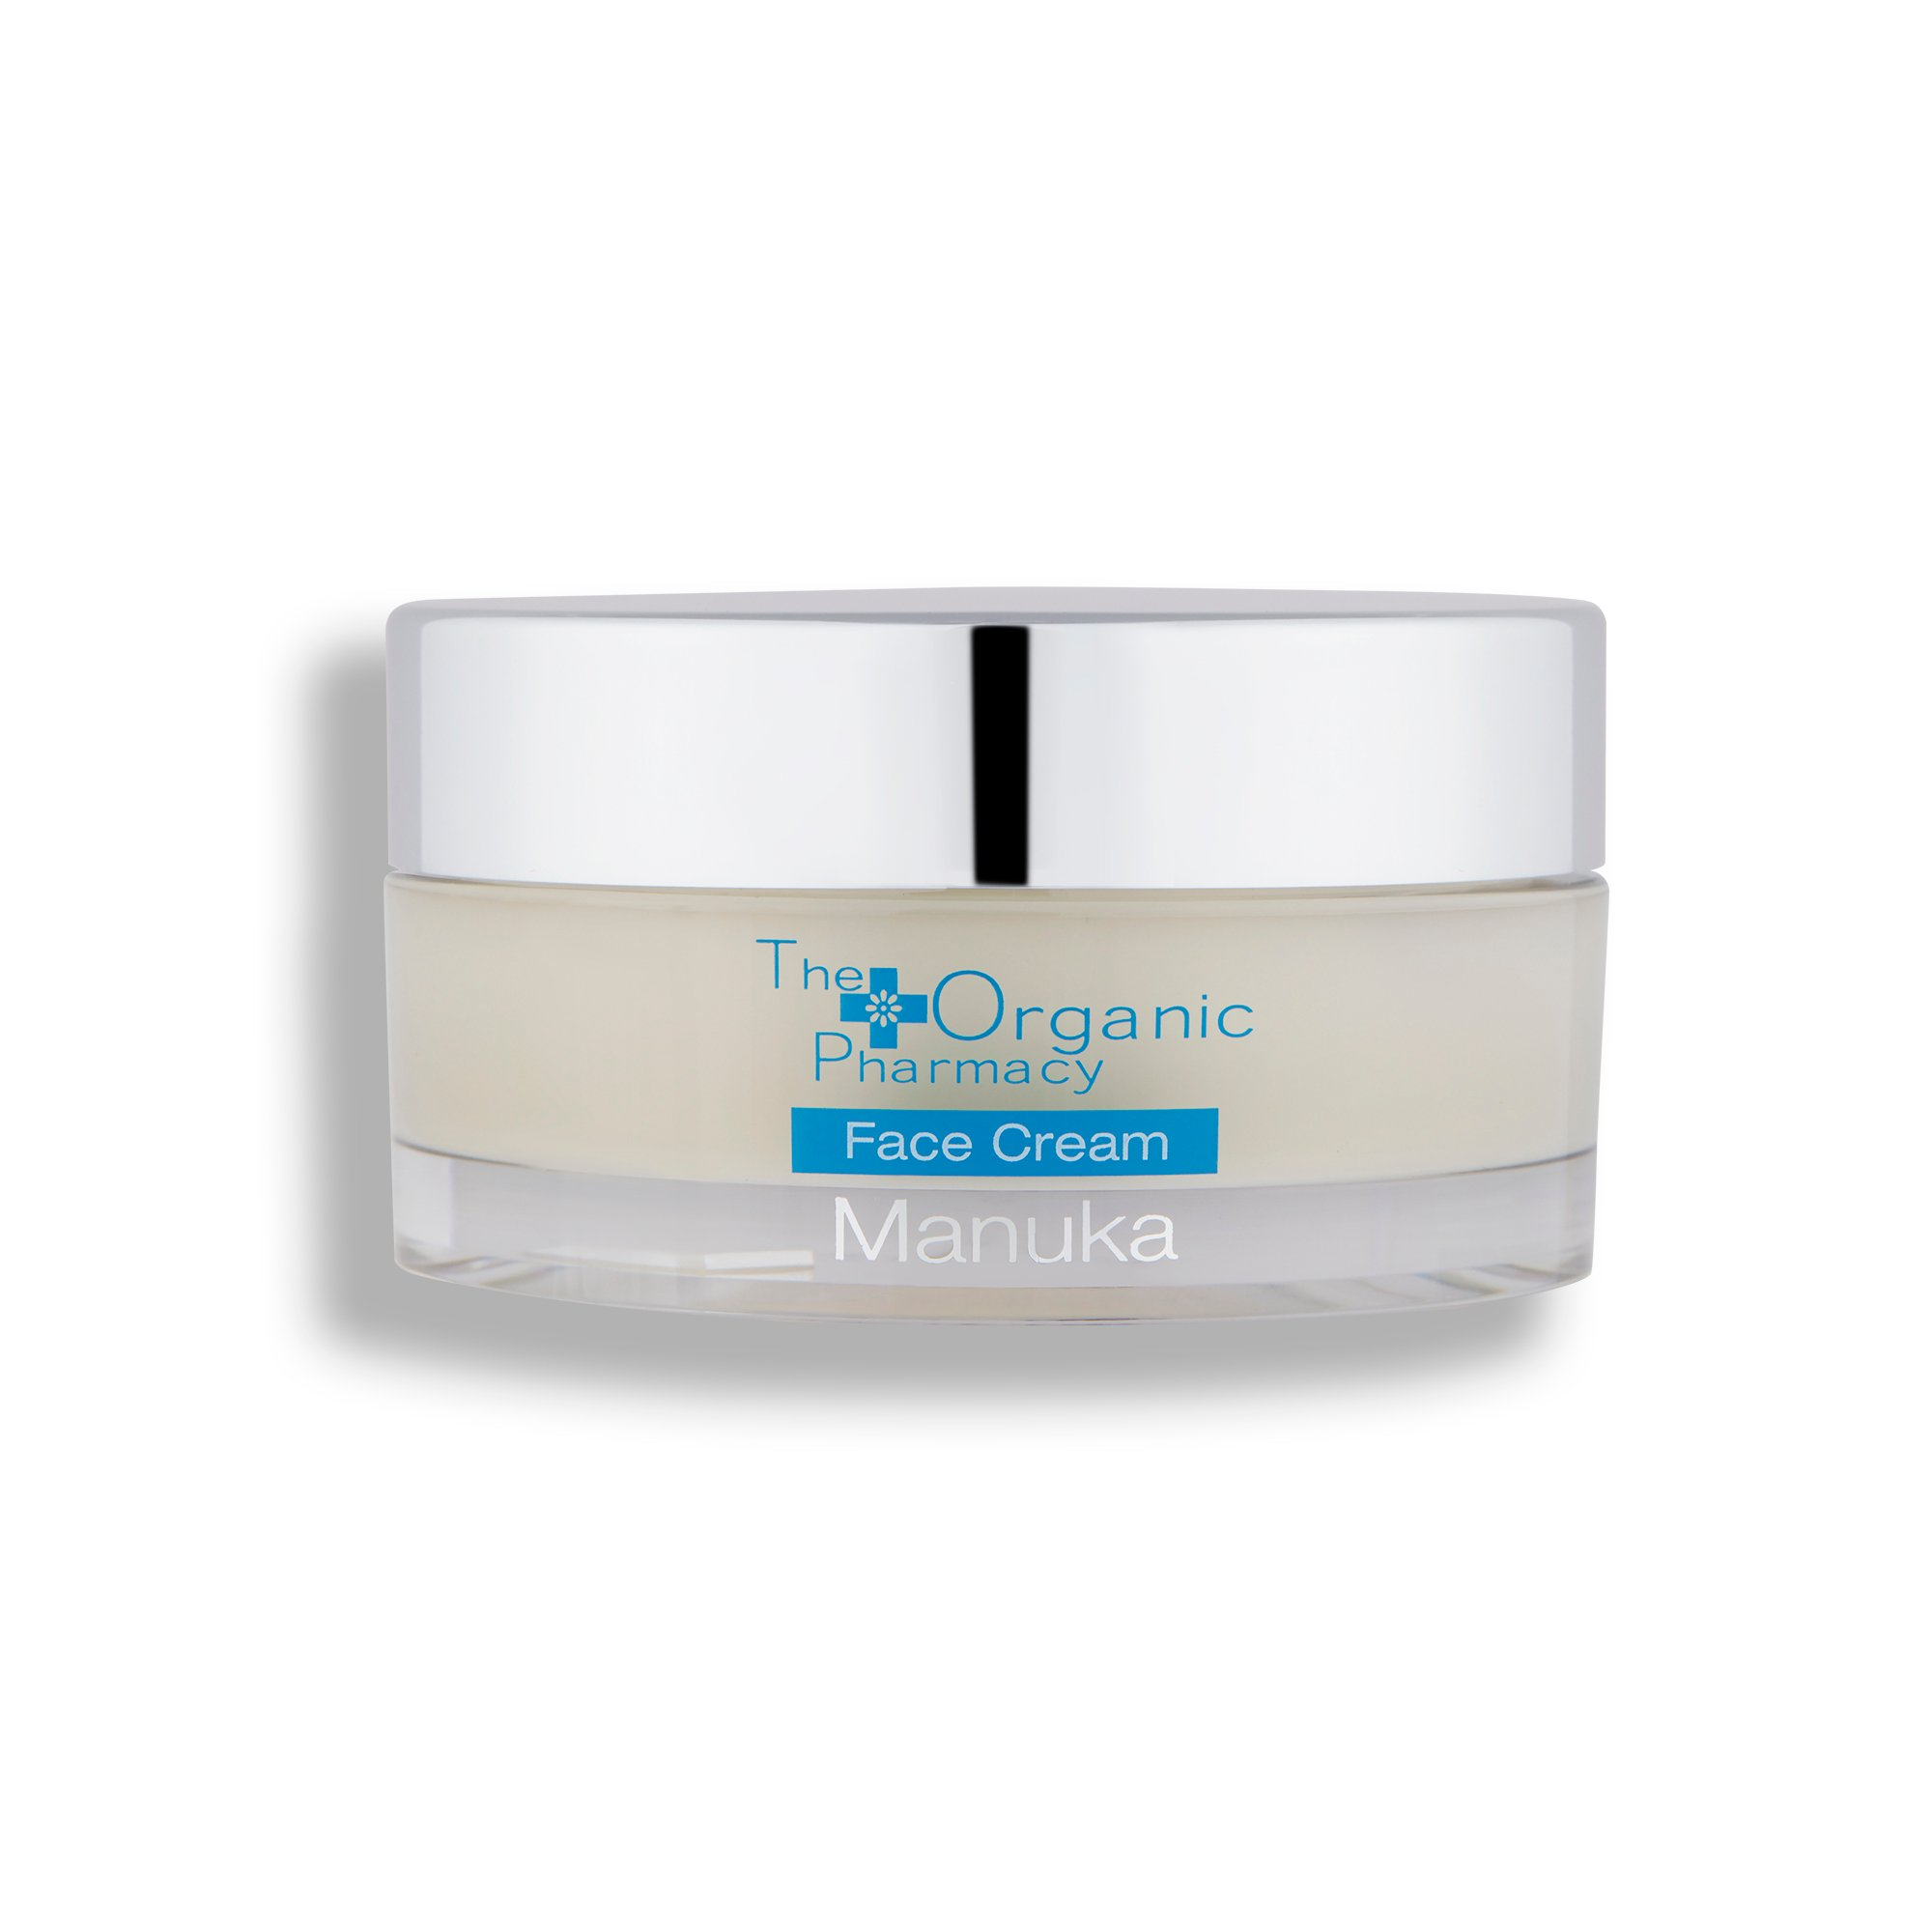 THE ORGANIC PHARMACY MANUKA FACE CREAM 50 ML - Farmacia Barni